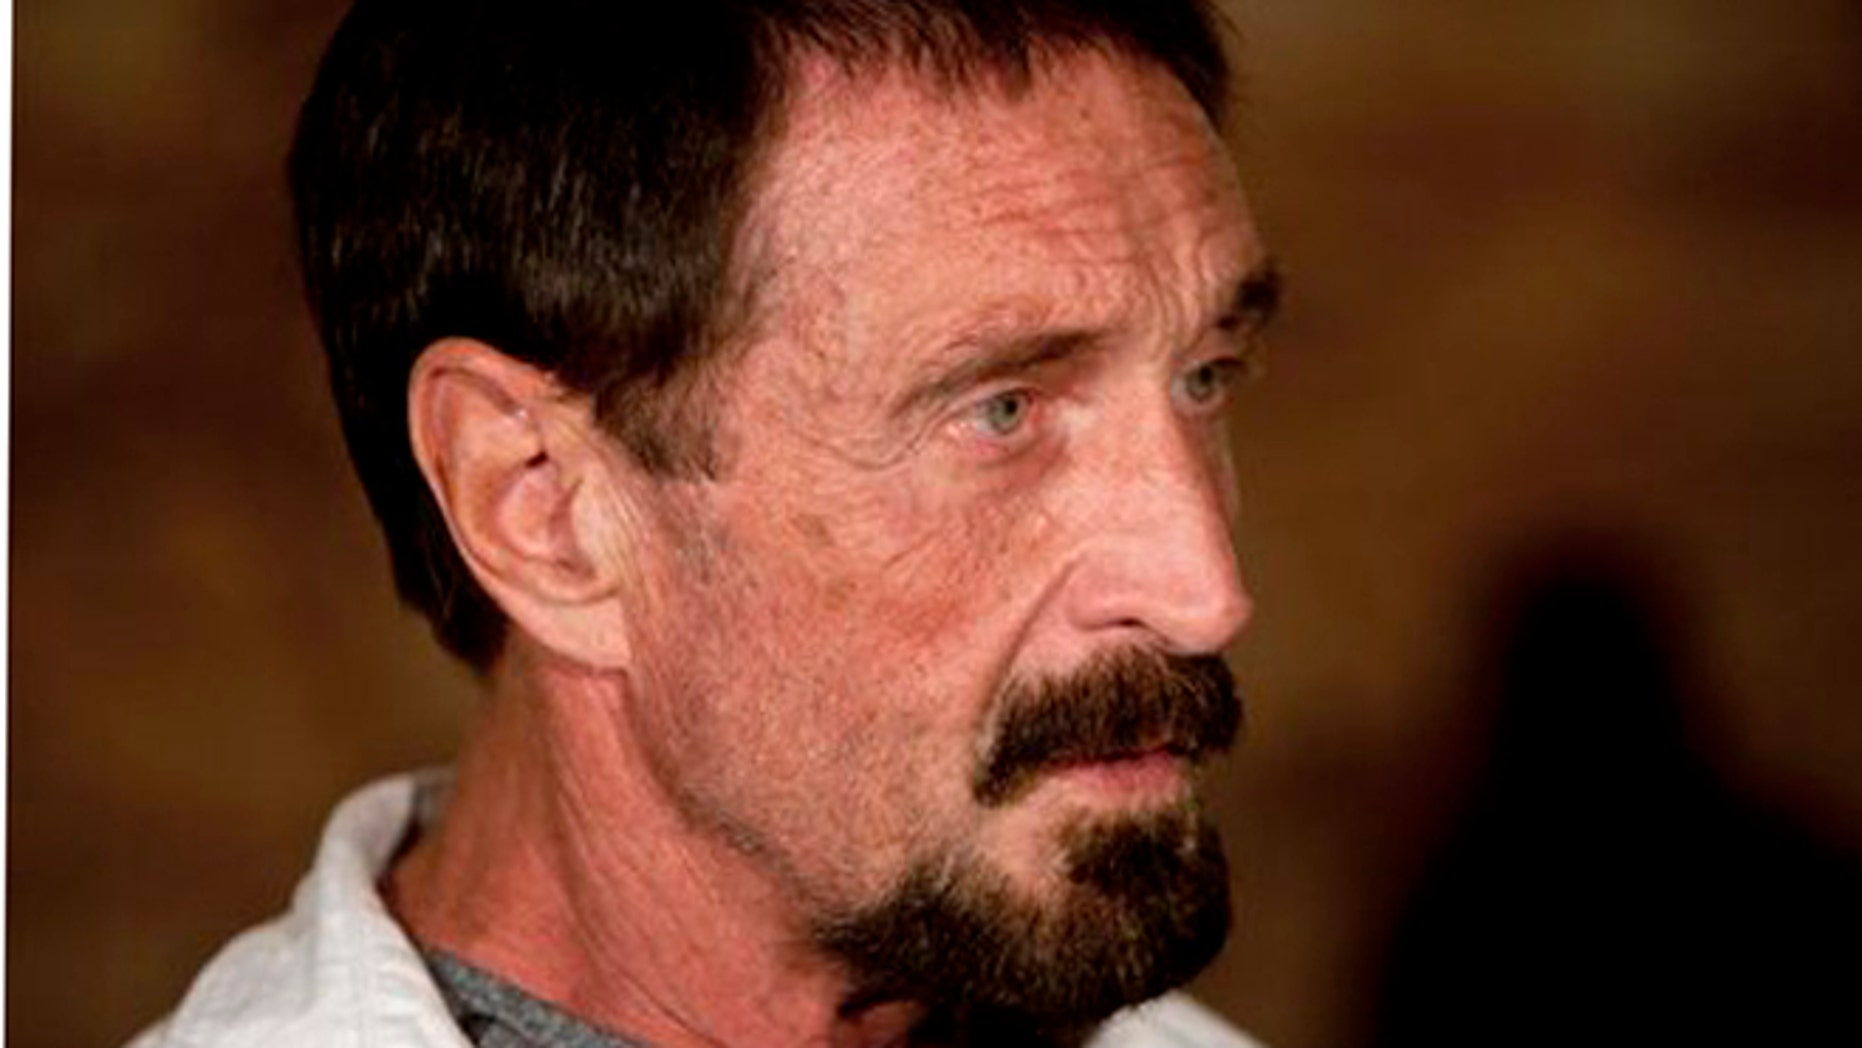 "Software company founder John McAfee listens to a question during an interview at a local restaurant in Guatemala City, Tuesday, Dec. 4, 2012.  McAfee, 67, has been identified as a ""person of interest"" in the killing of his neighbor in Belize, 52-year-old Gregory Faull. Police are urging McAfee to come in for questioning. The anti-virus company founder fled Belize and is seeking political asylum in Guatemala, according to his lawyer Telesforo Guerra. (AP Photo/Moises Castillo)"